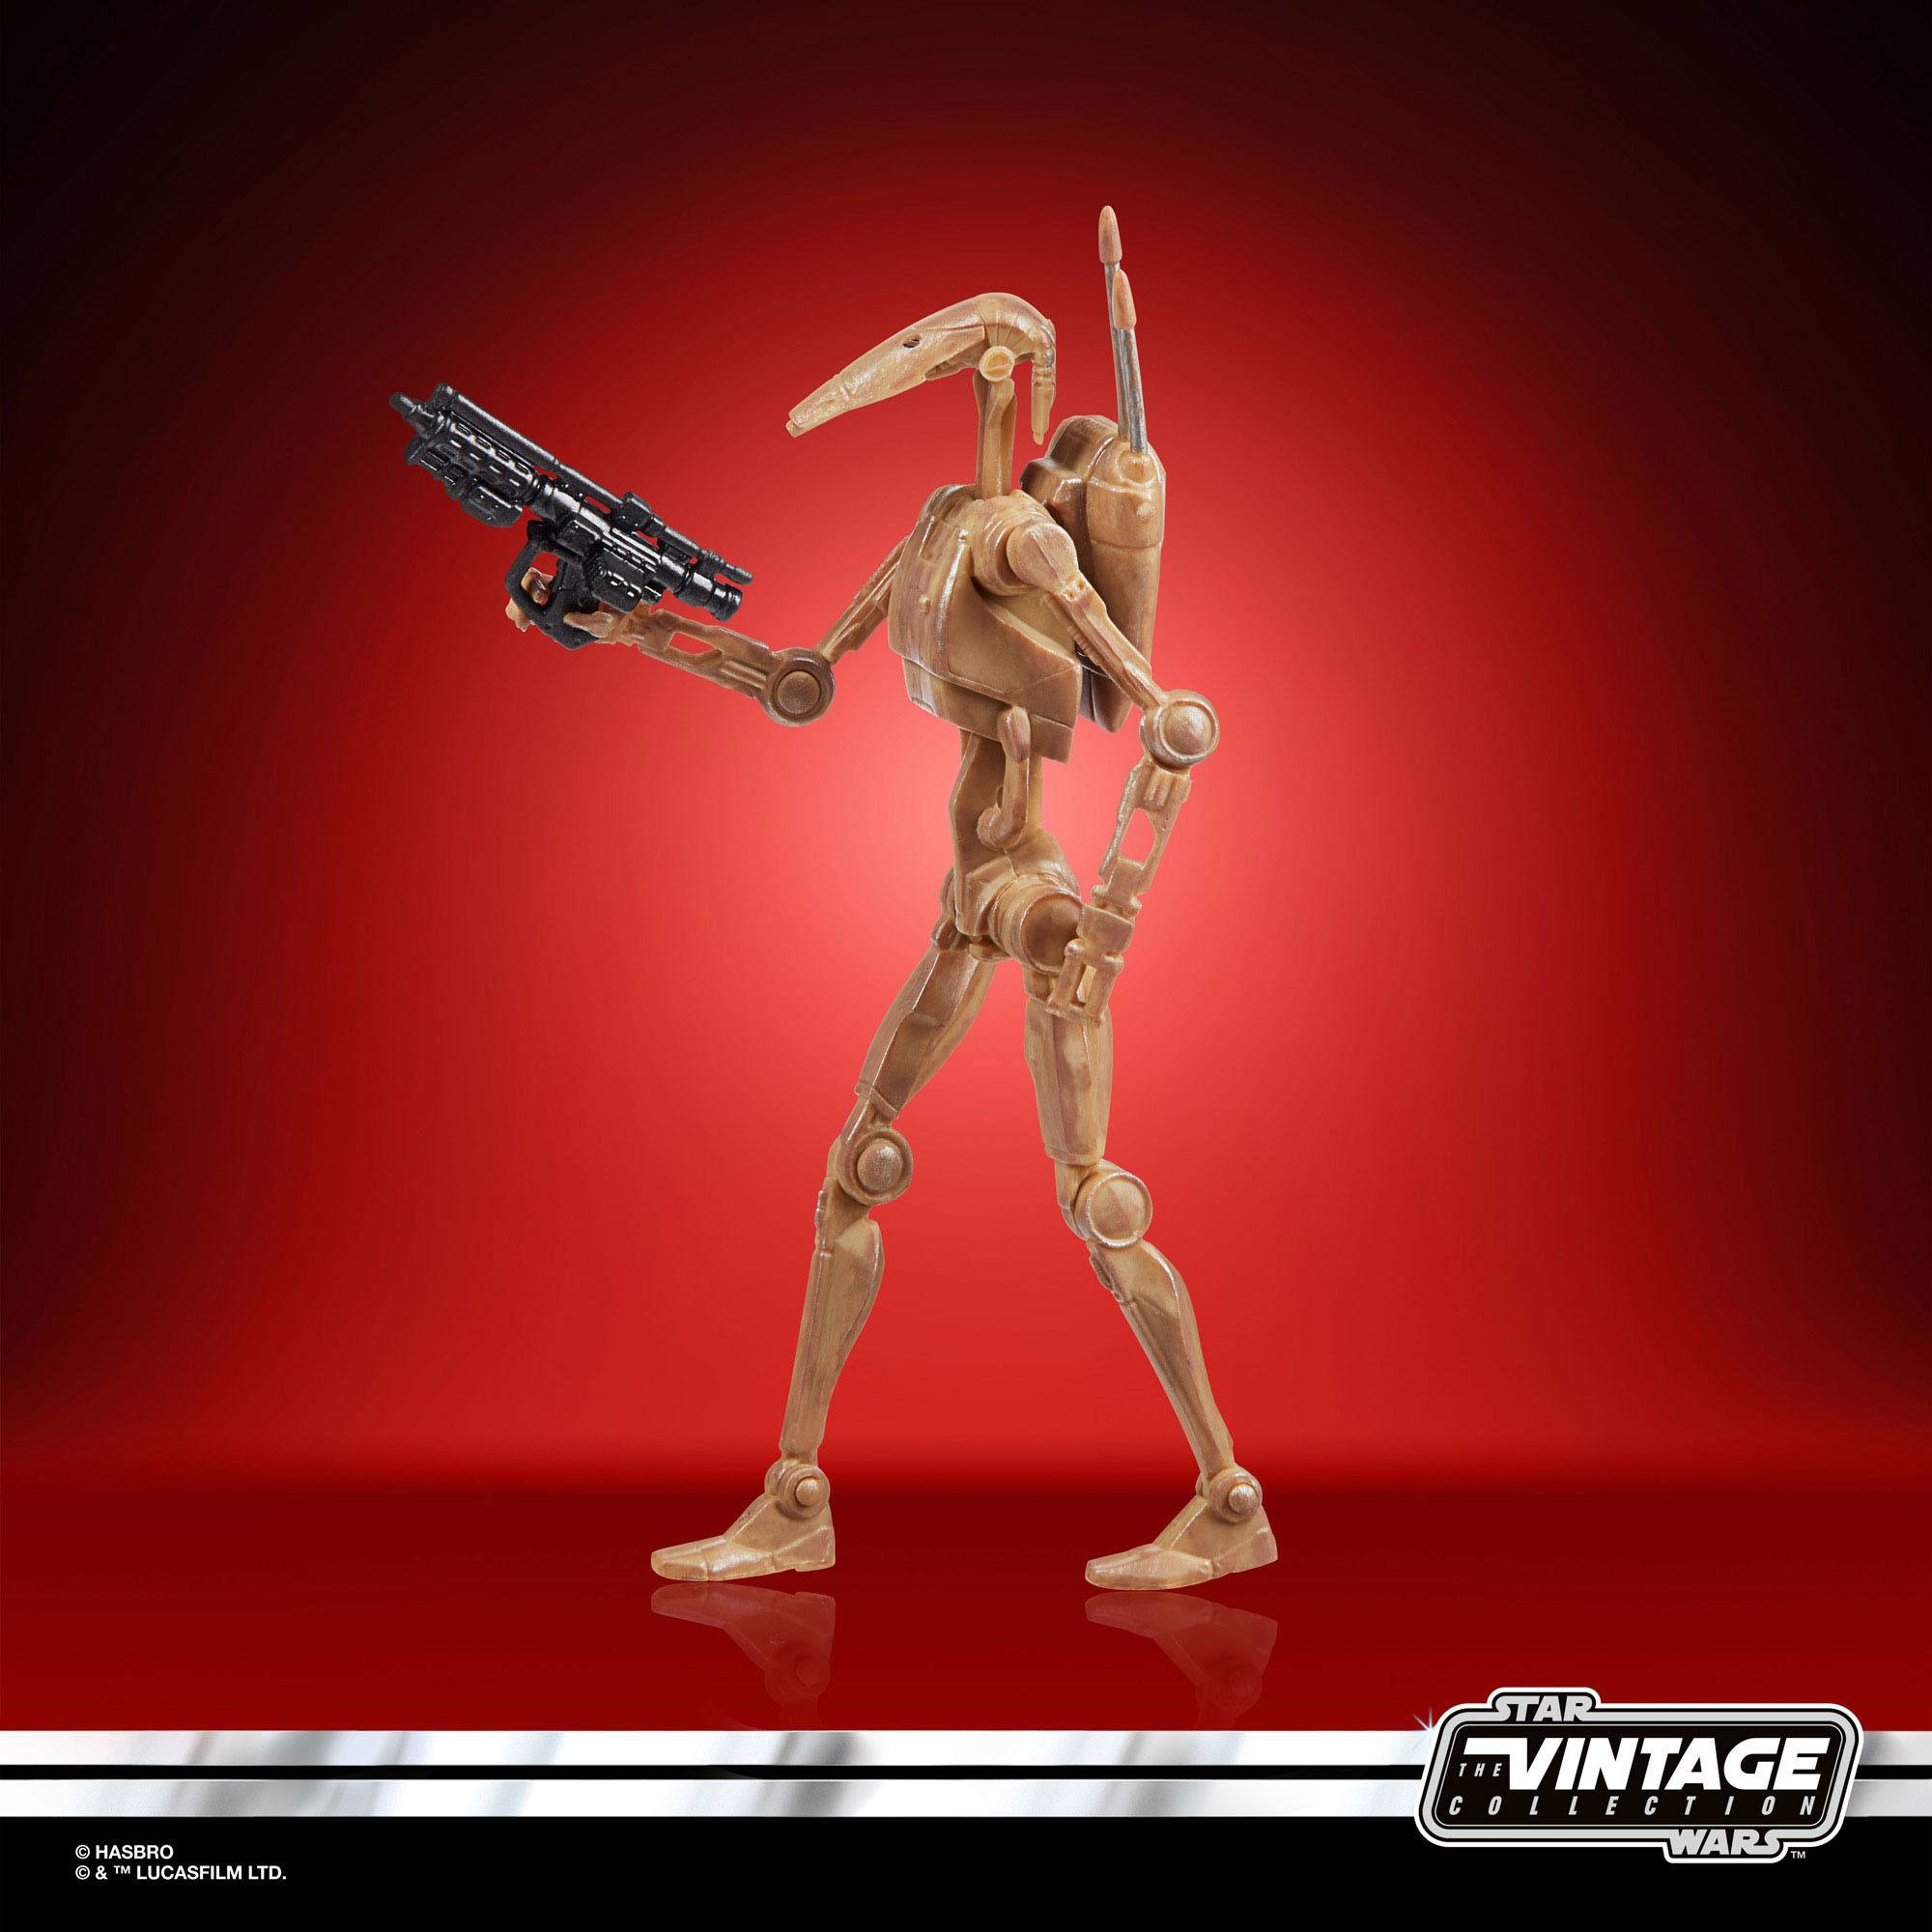 Star Wars The Vintage Collection Battle Droid F1886 5010993813322